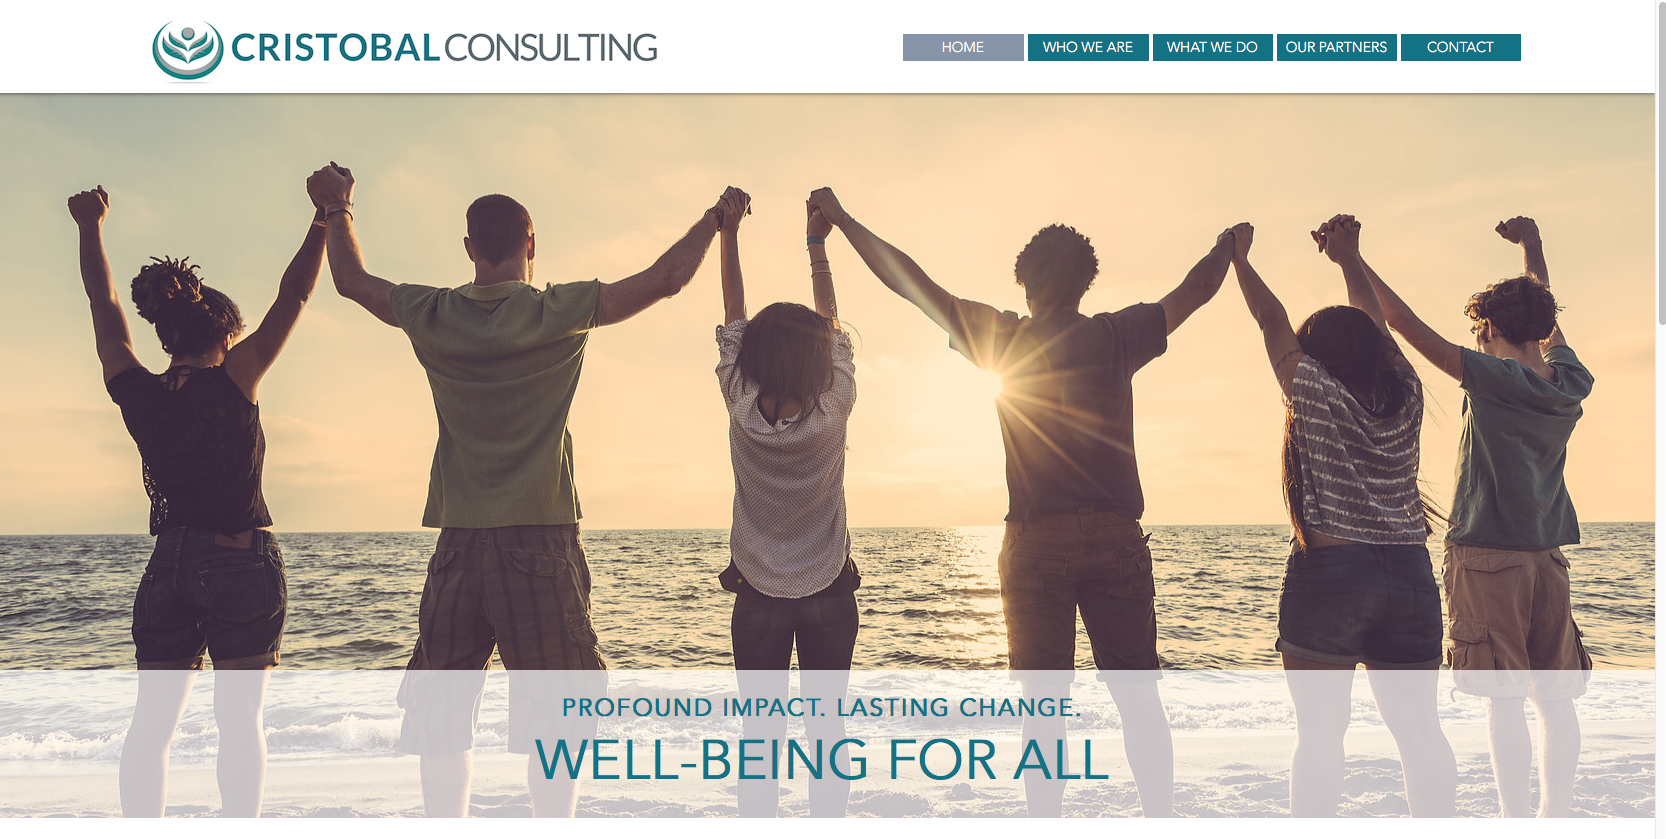 Cristobal Consulting